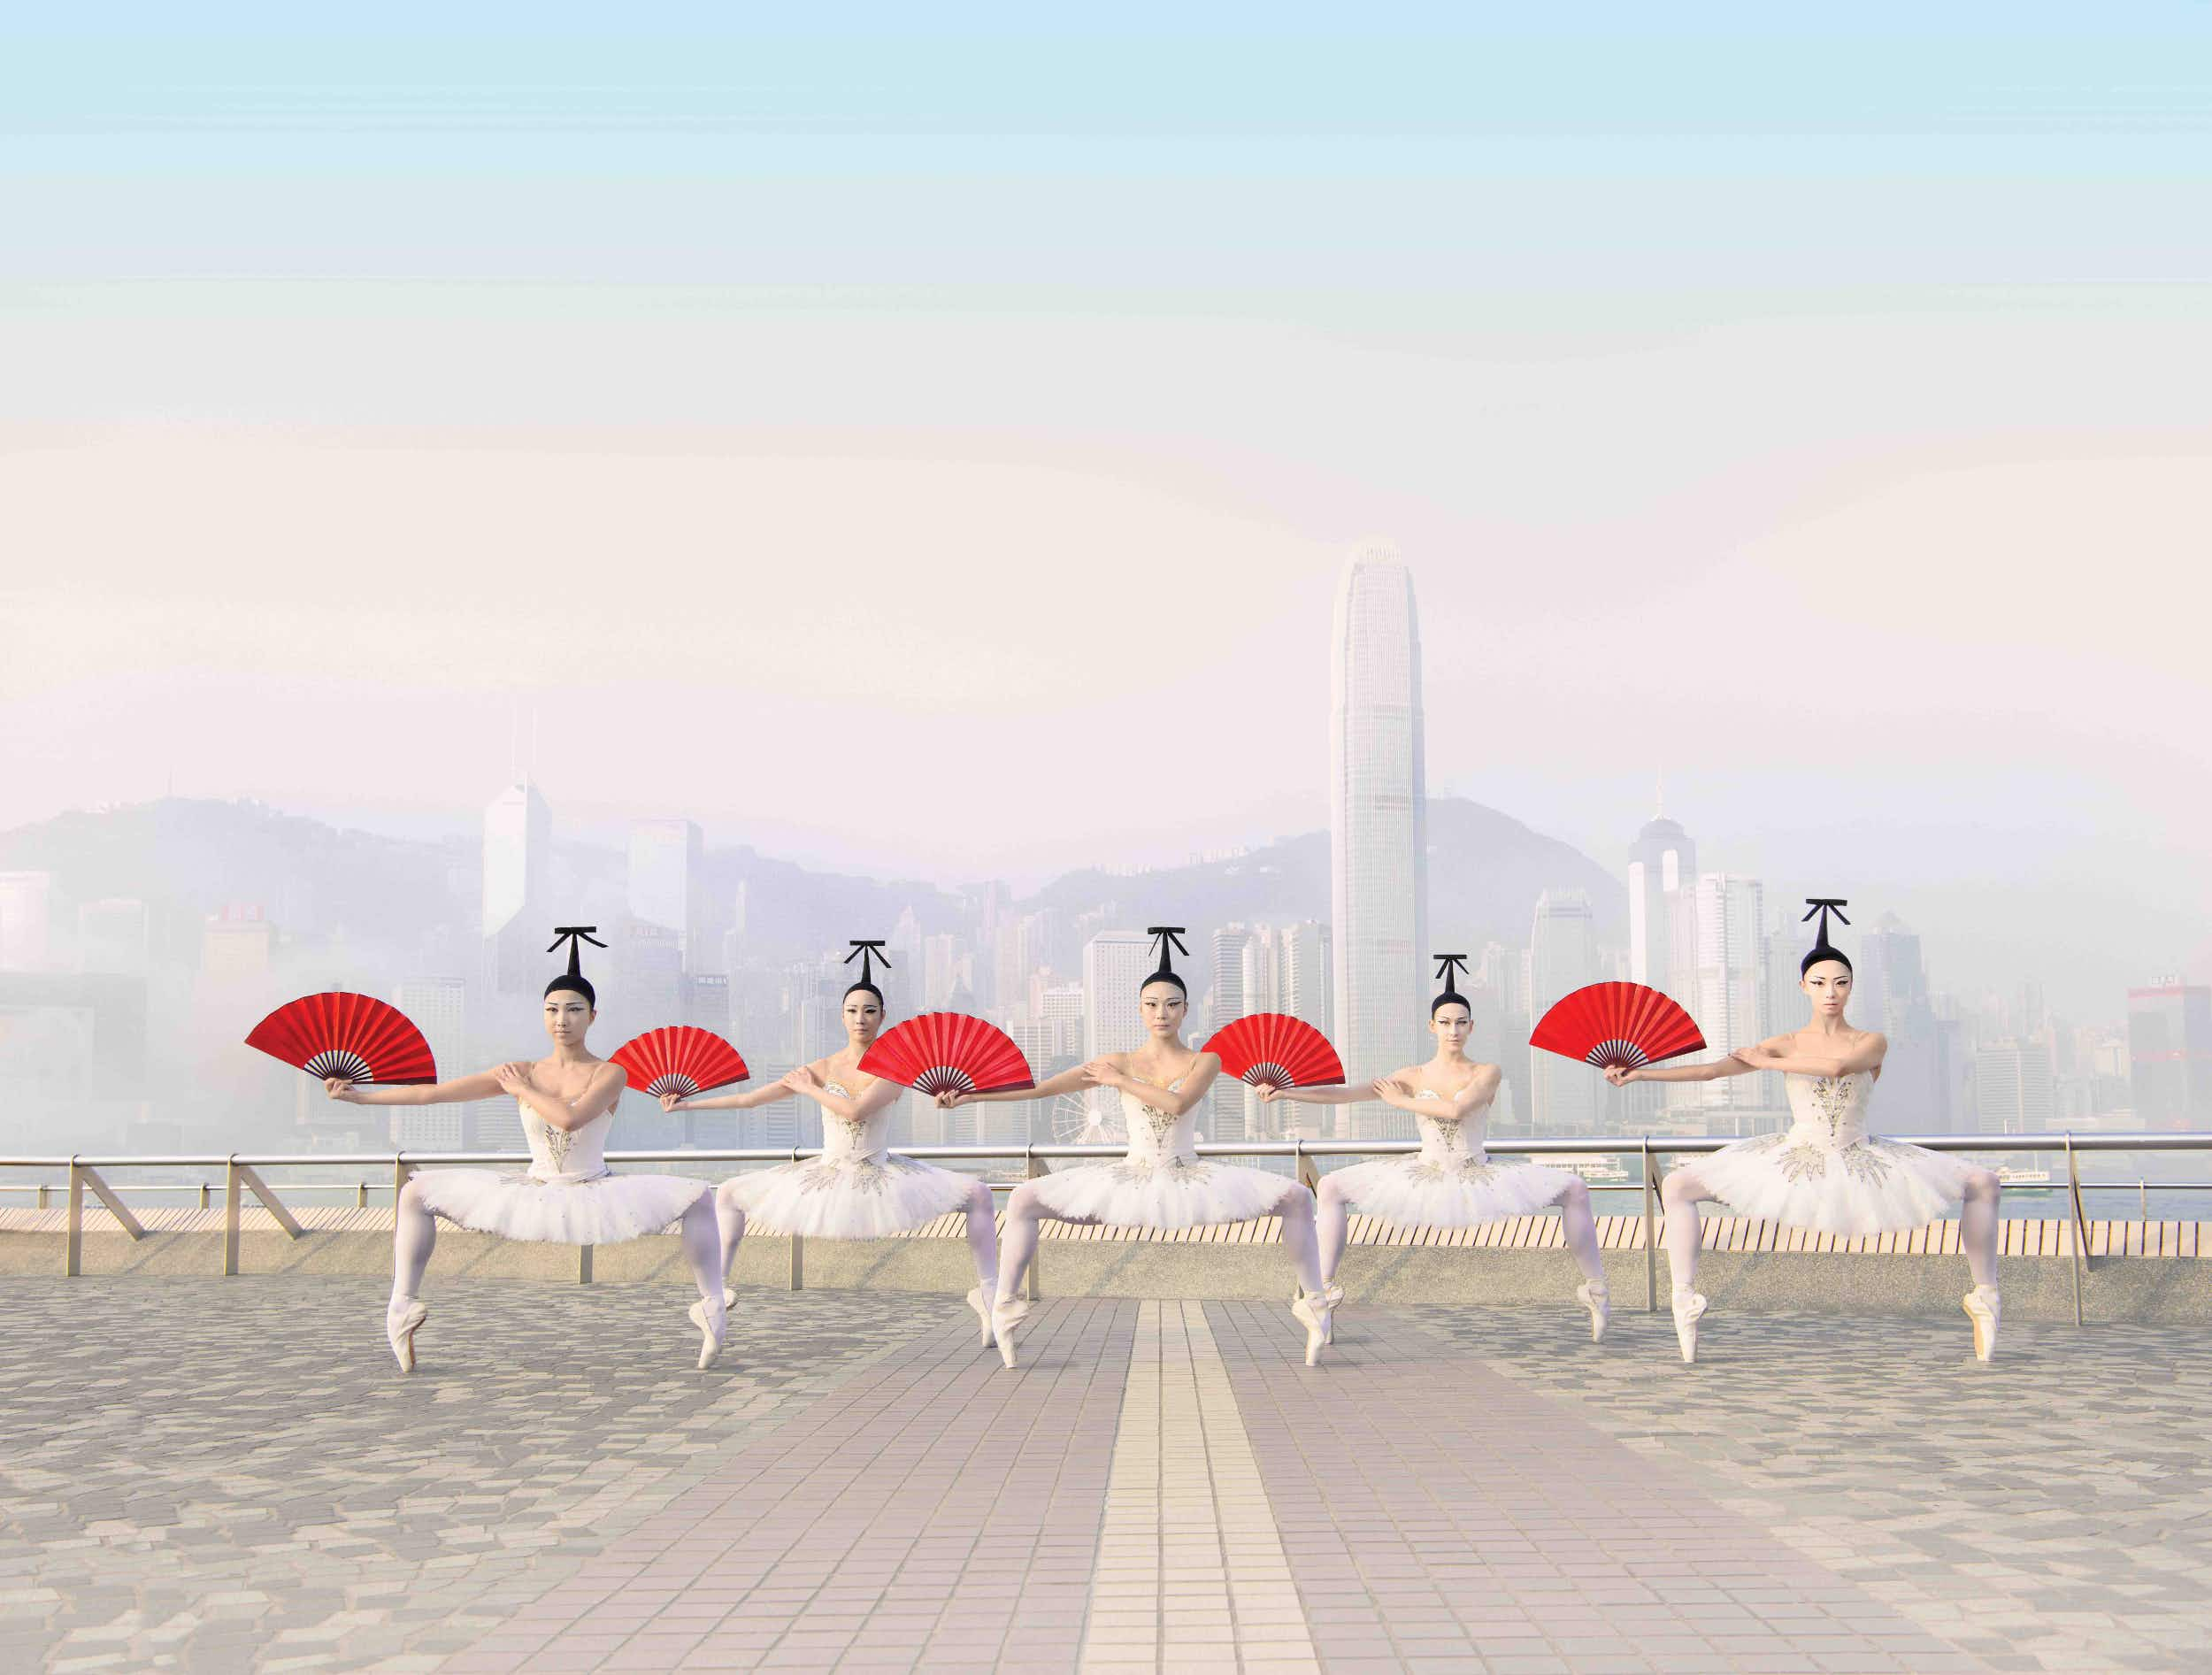 Ballet dancers mark the start of the season with remarkable moves across Hong Kong